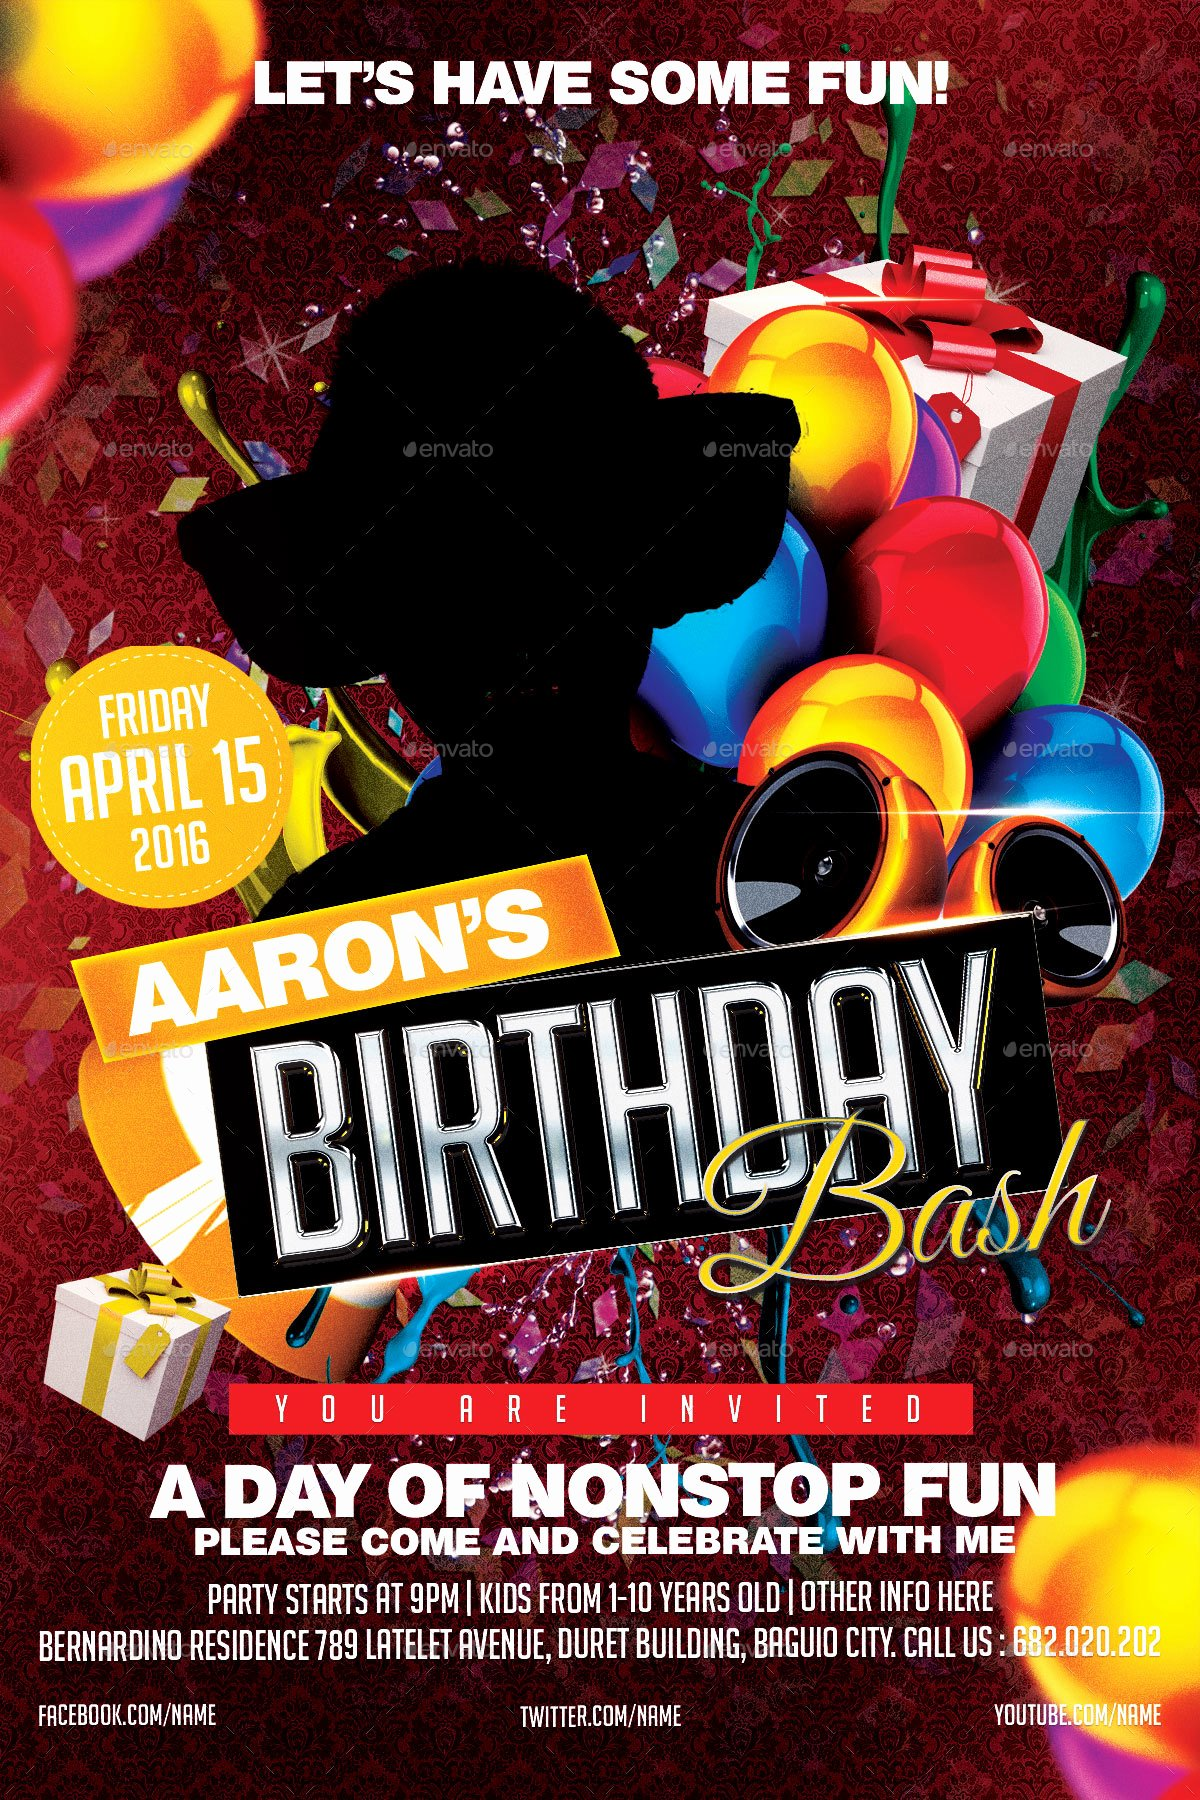 Birthday Bash Flyer Template Awesome Birthday Bash Party Flyer by Mikkool